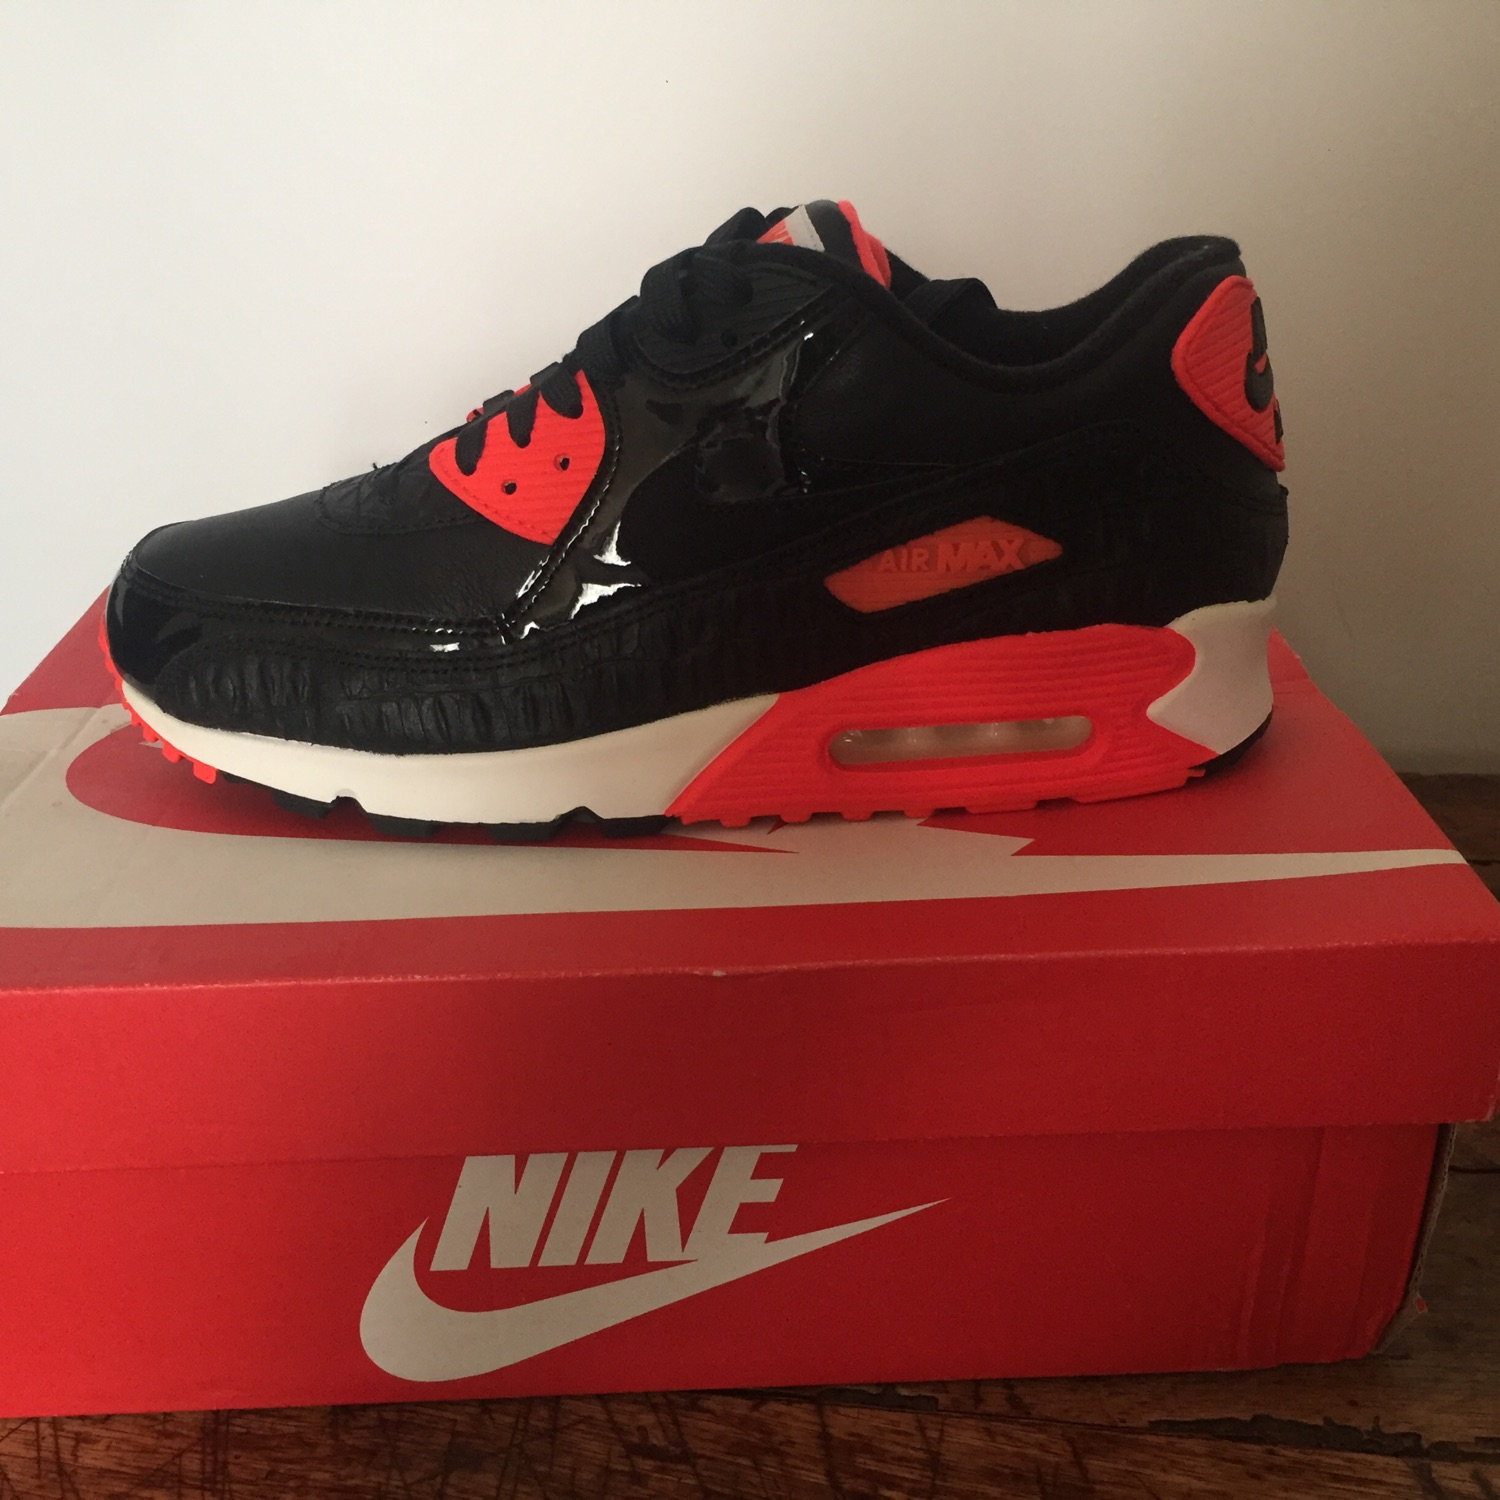 huge selection of bfc78 d5dc5 Nike Air Max 90 Black Croc Infrared